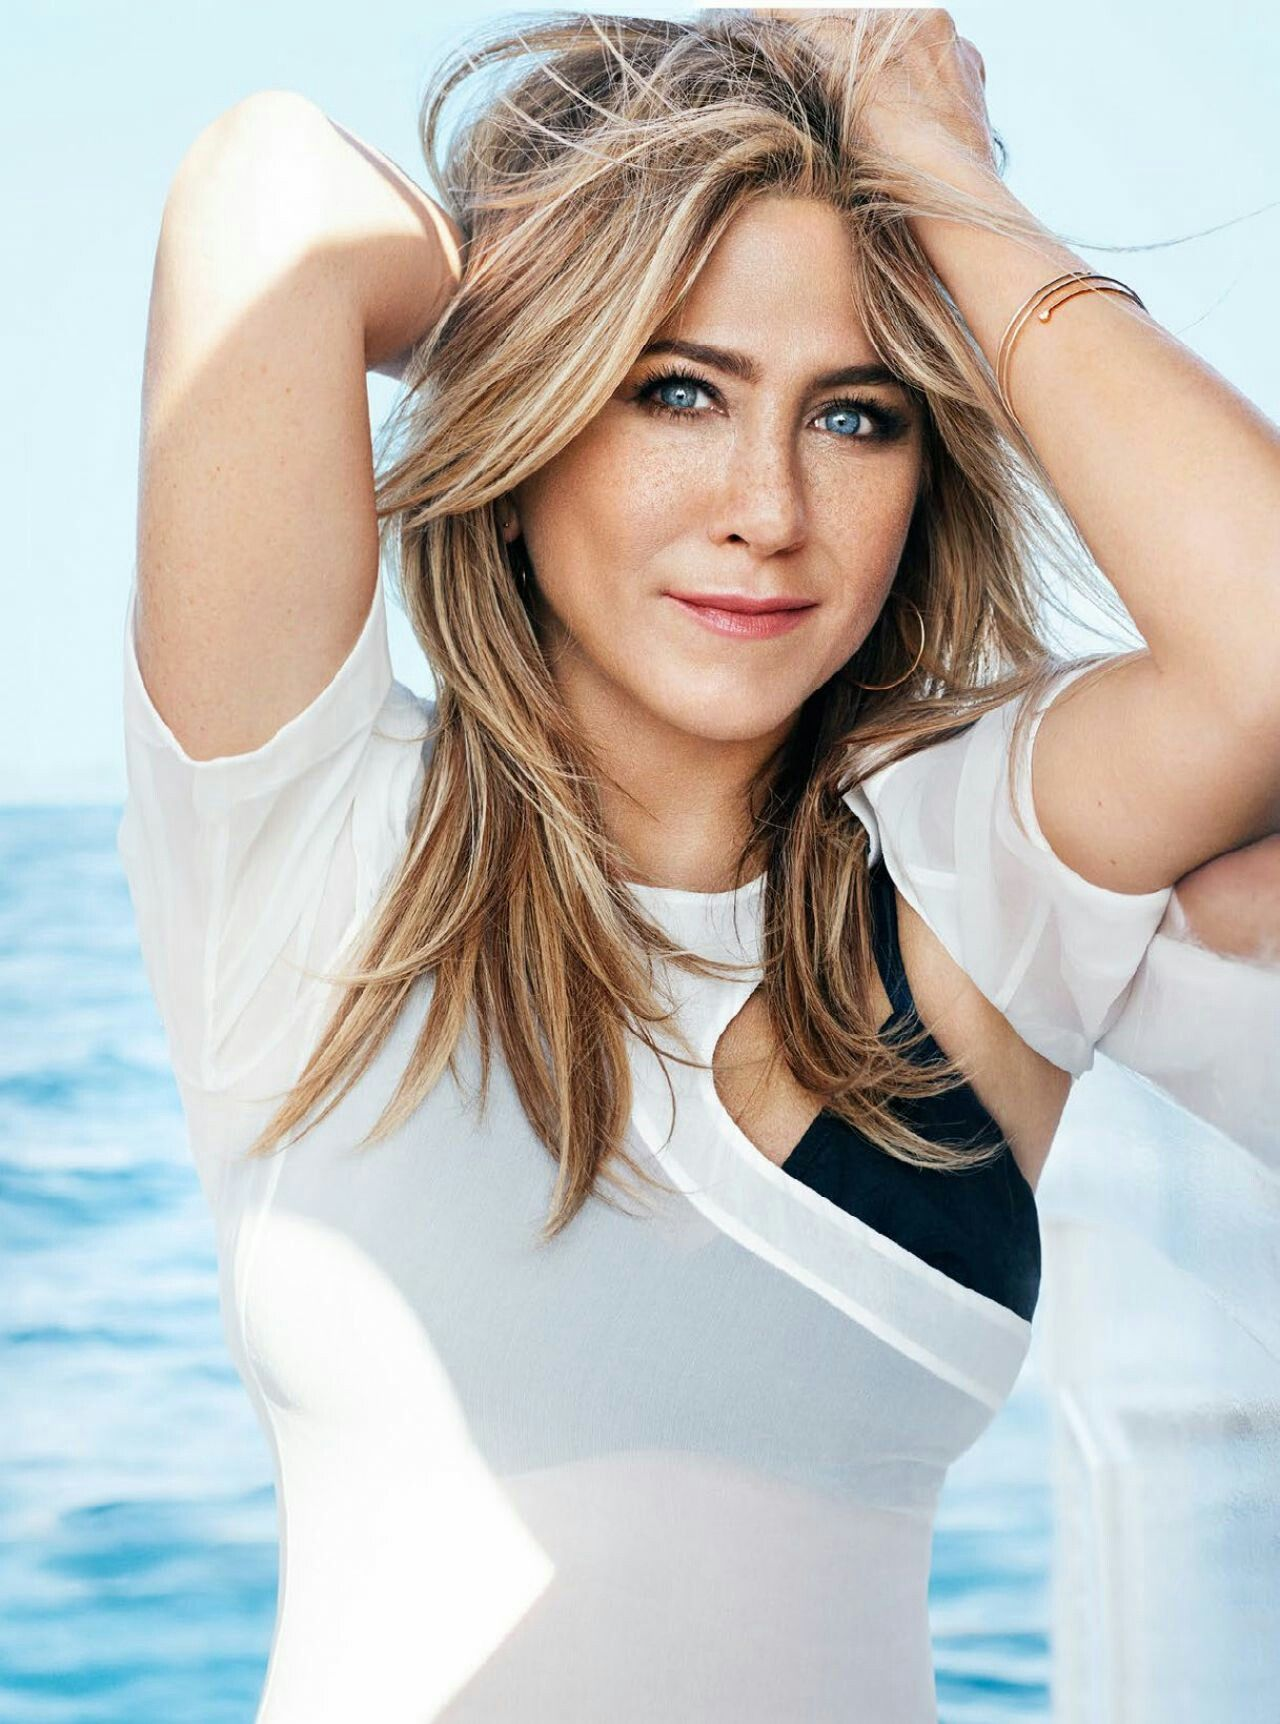 Jennifer Aniston born February 11, 1969 (age 49) nudes (34 fotos) Fappening, Snapchat, butt